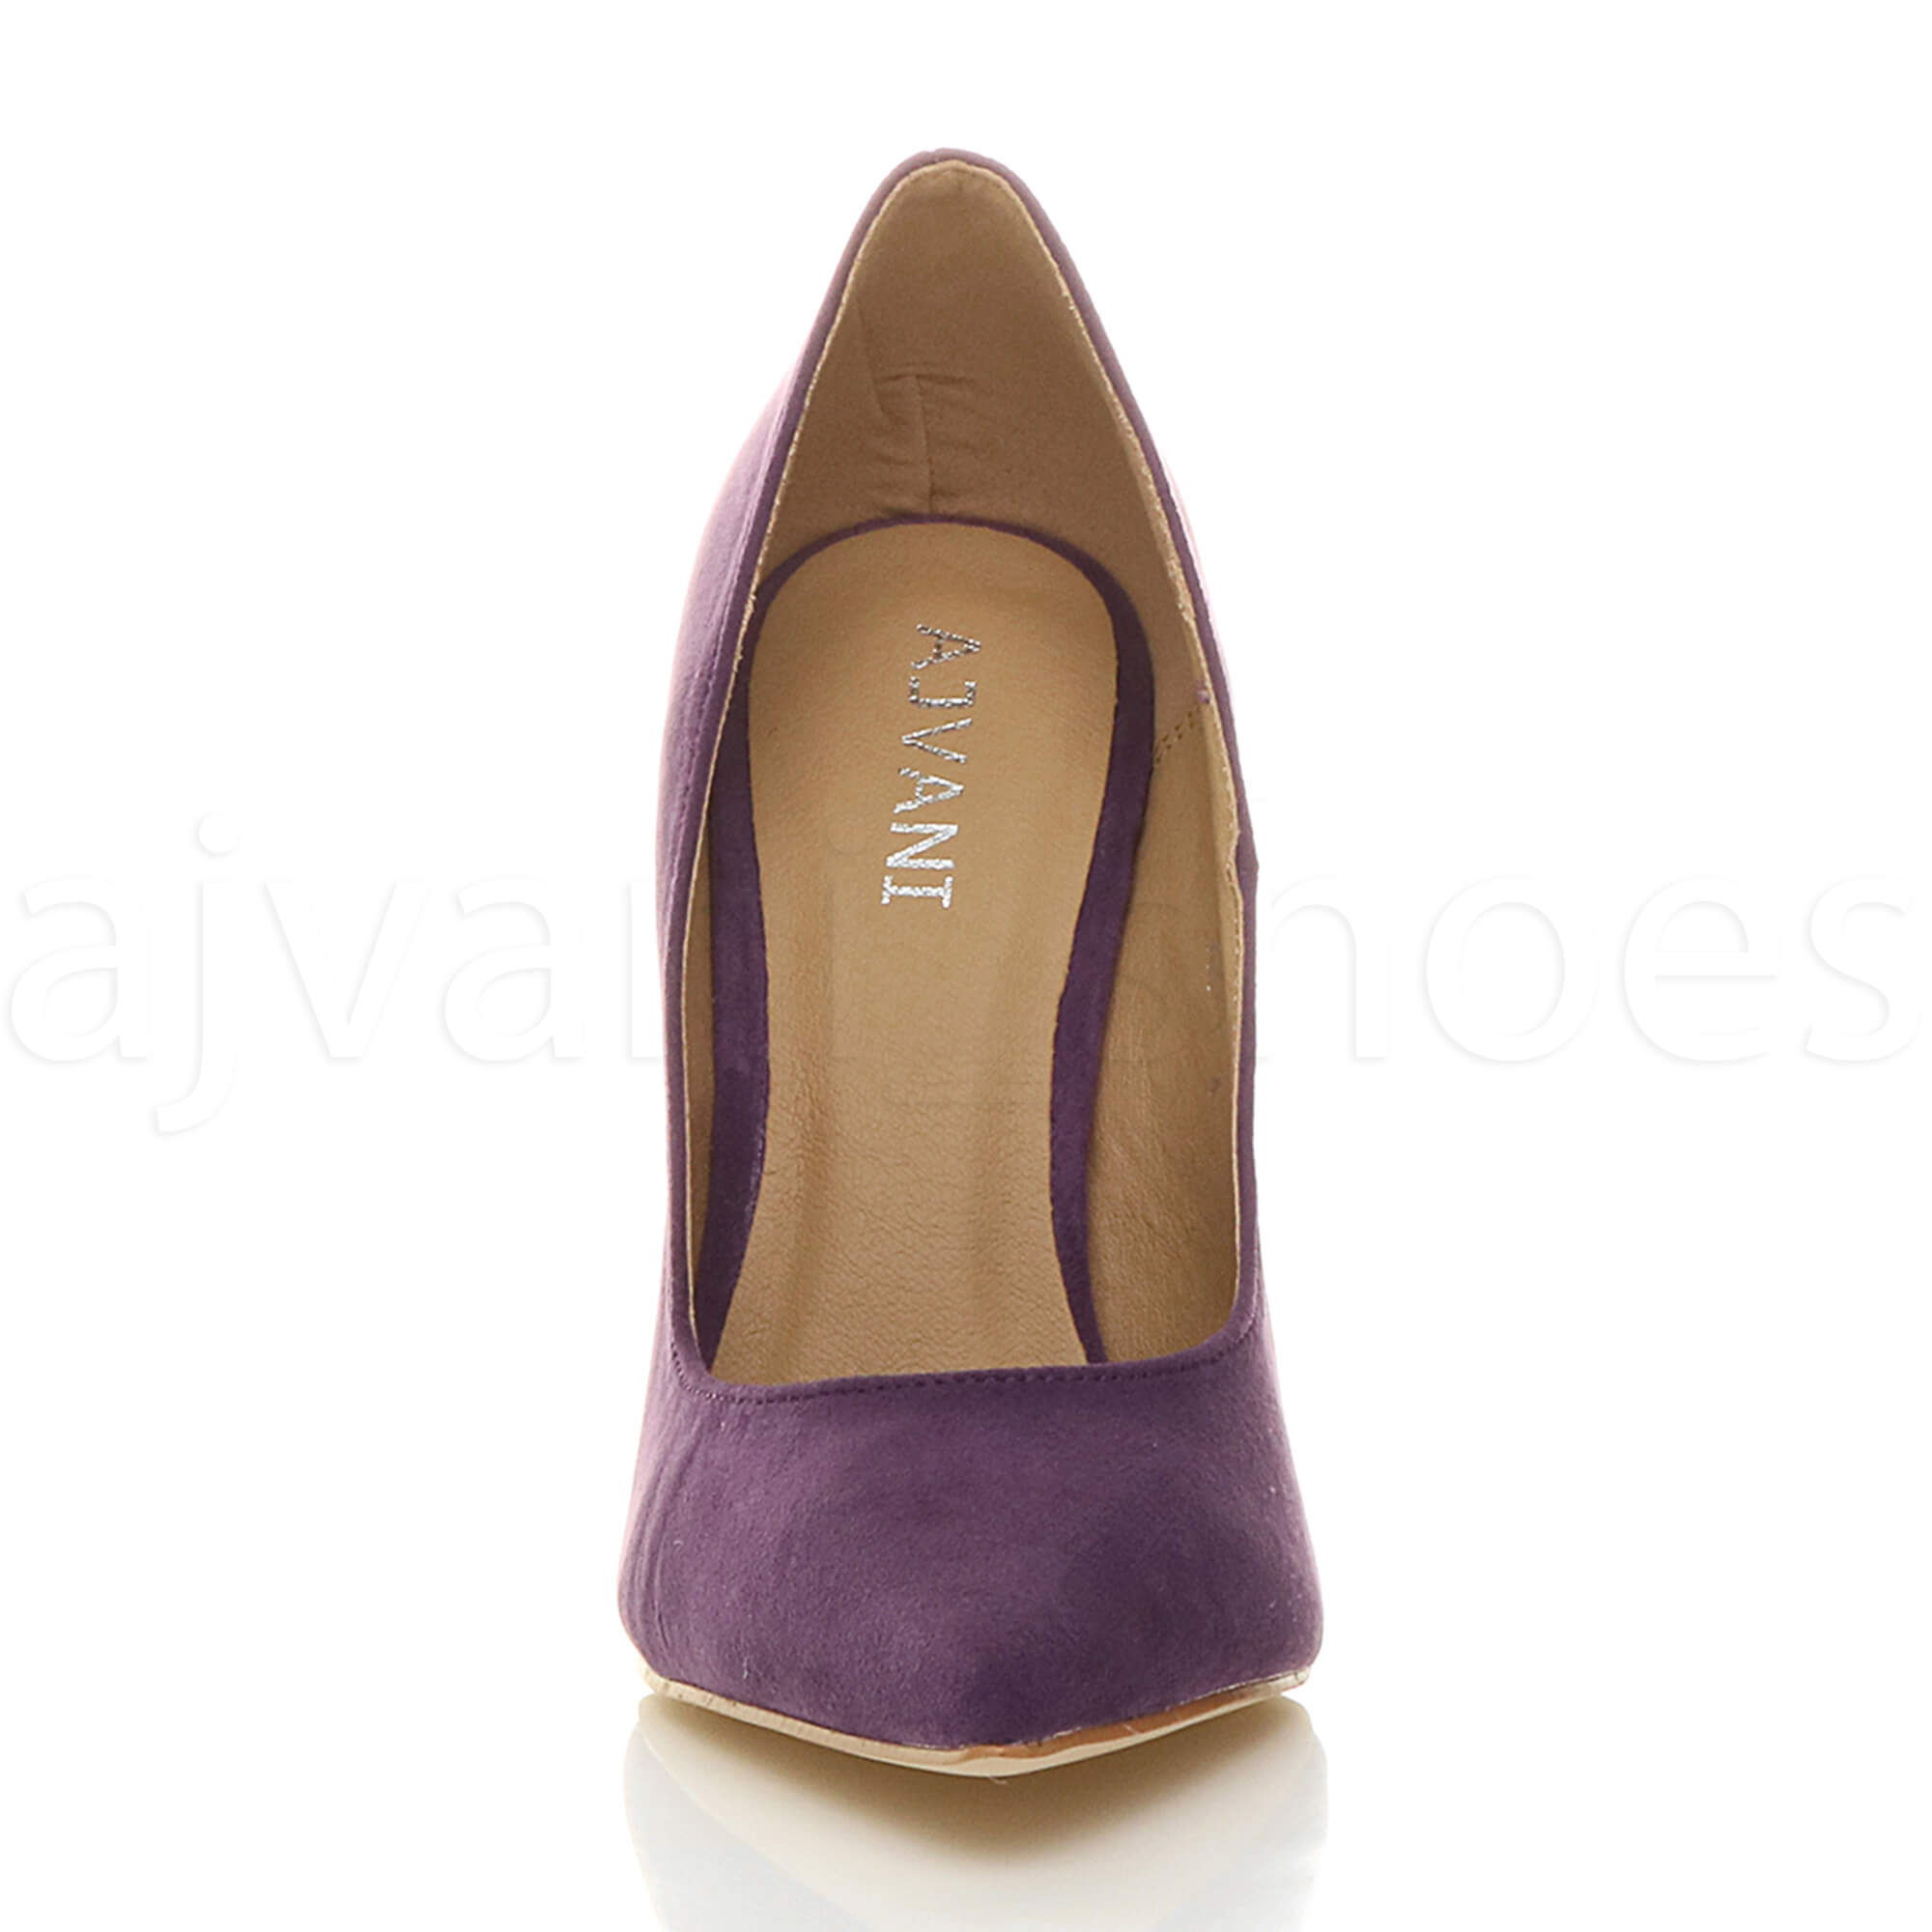 WOMENS-LADIES-HIGH-HEEL-POINTED-CONTRAST-COURT-SMART-PARTY-WORK-SHOES-PUMPS-SIZE thumbnail 157